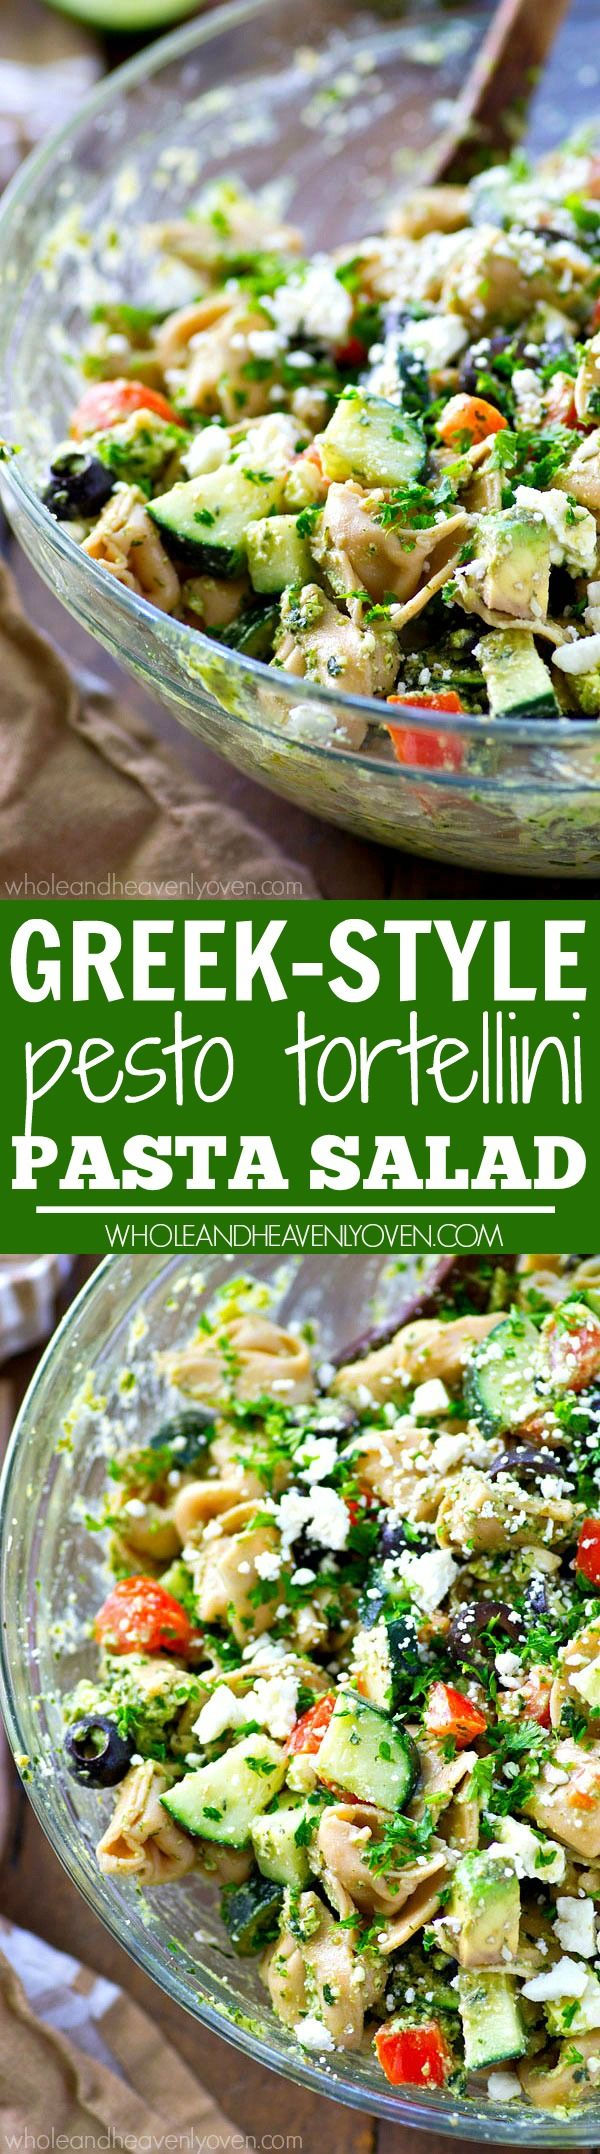 Your new favorite summer salad! This easy tortellini pasta salad is piled high with Greek-style goodness and tossed in an amazing pesto dressing.